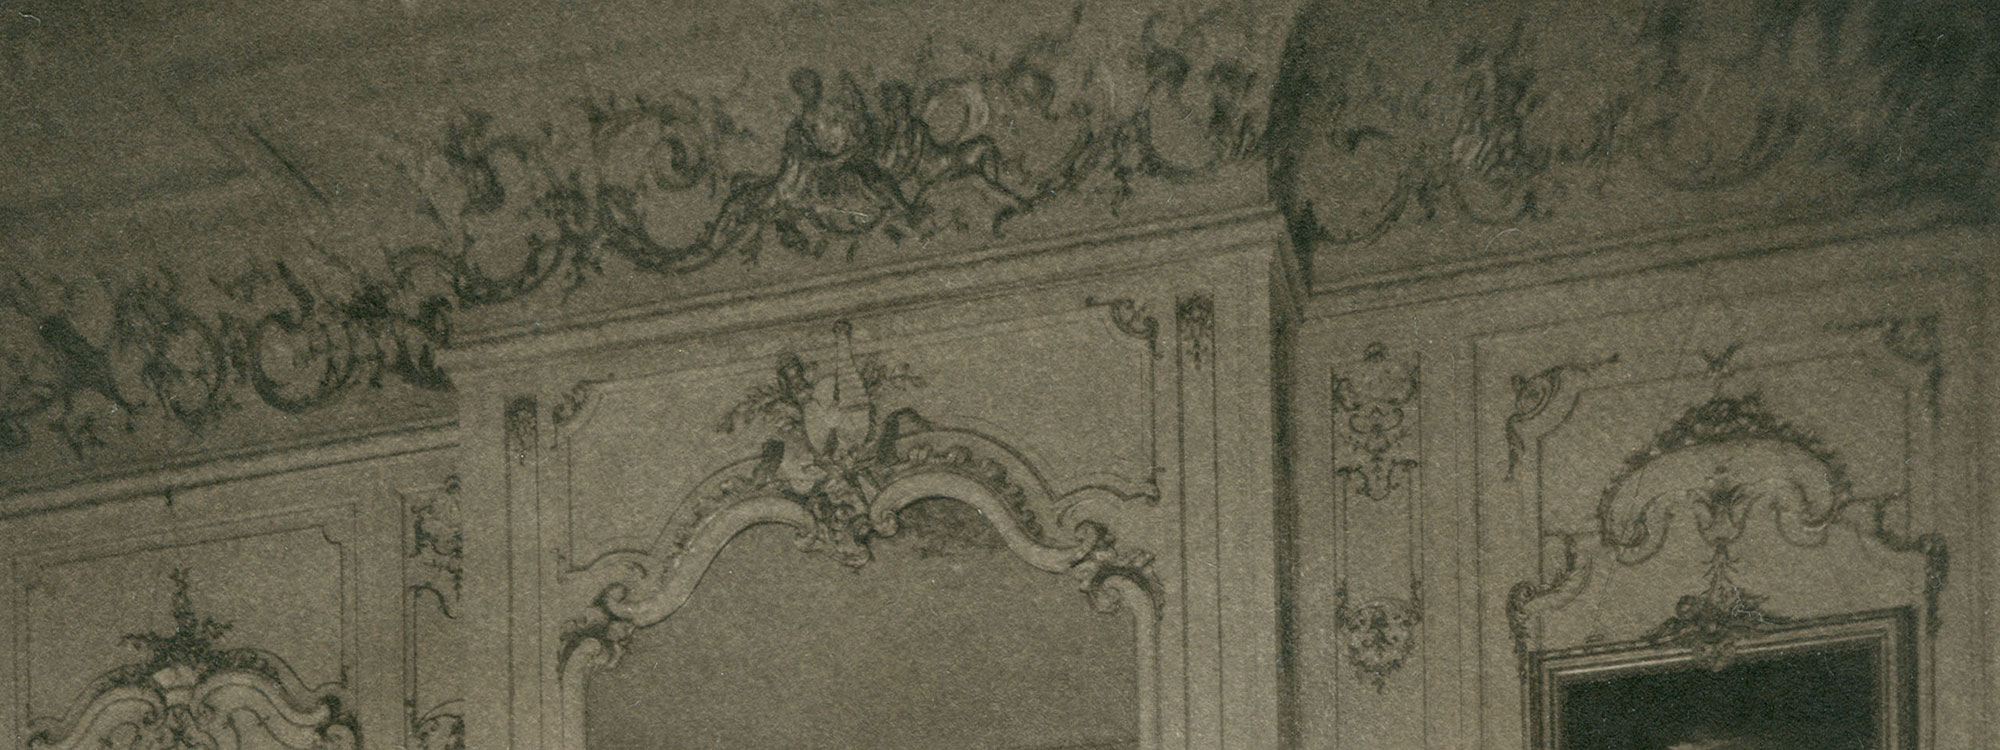 details from inside the mansion